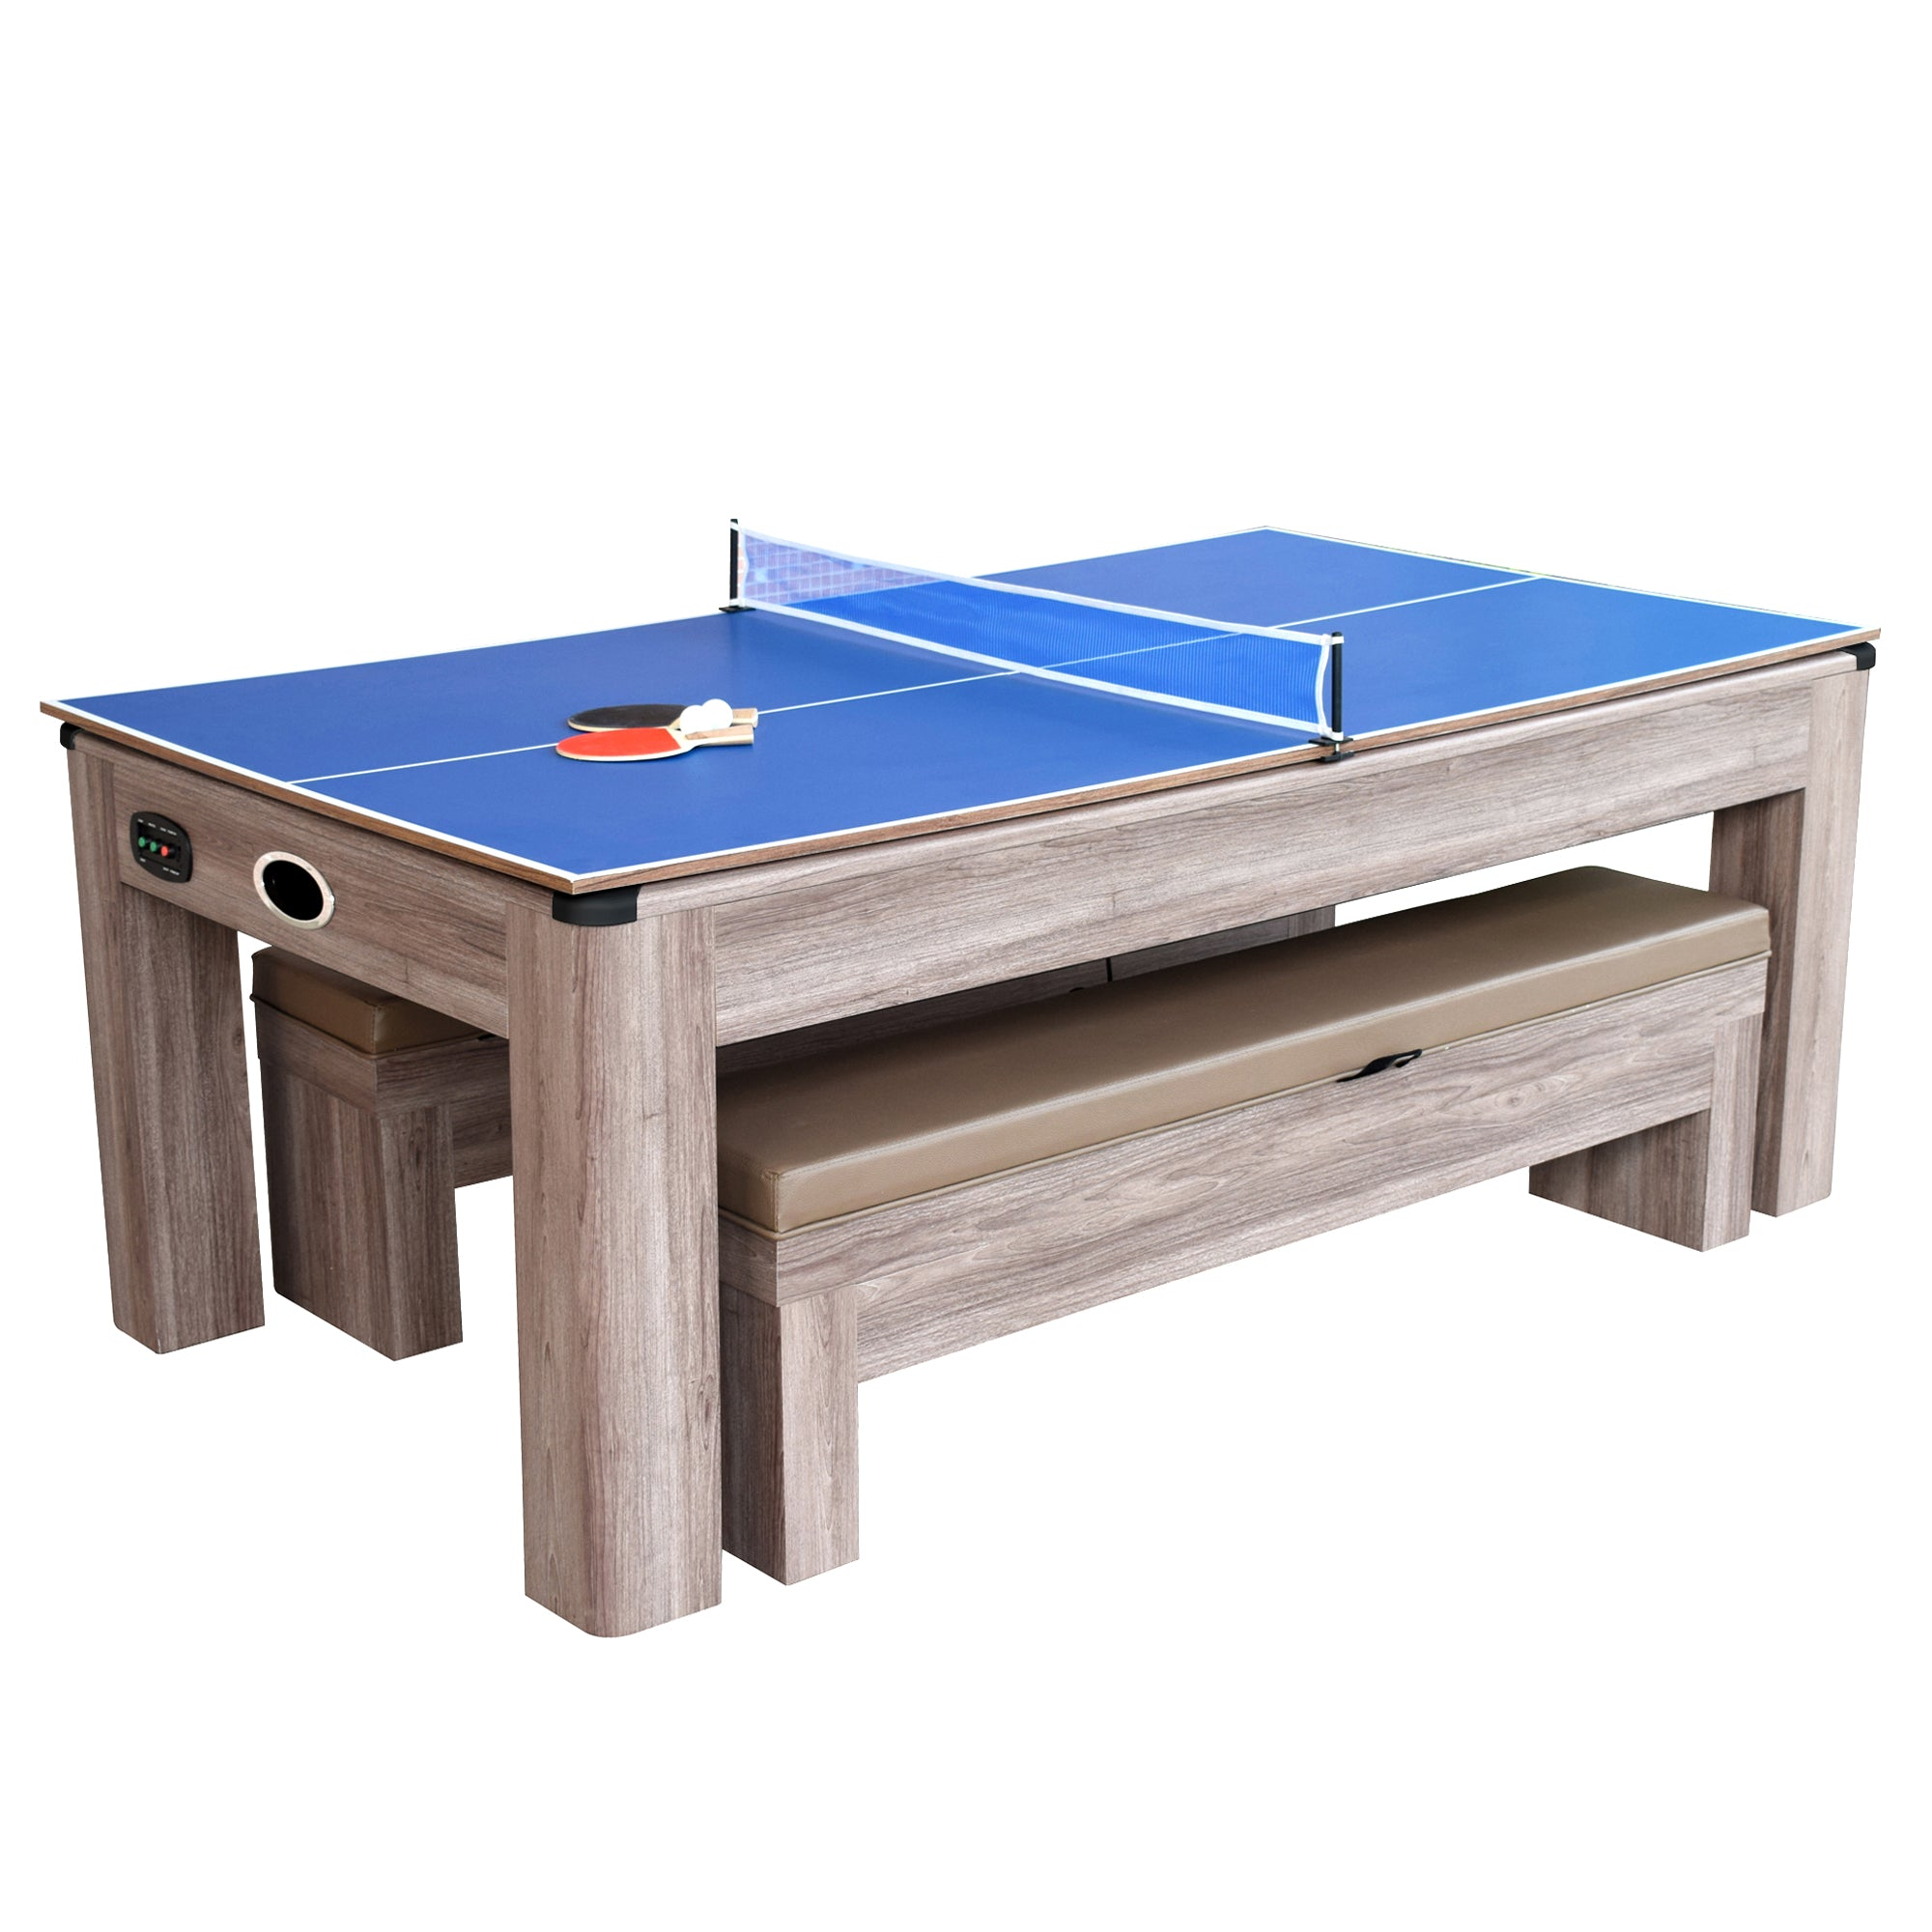 Driftwood Ft Air Hockey Table Combo Set WBenches By Carmelli - Carmelli pool table